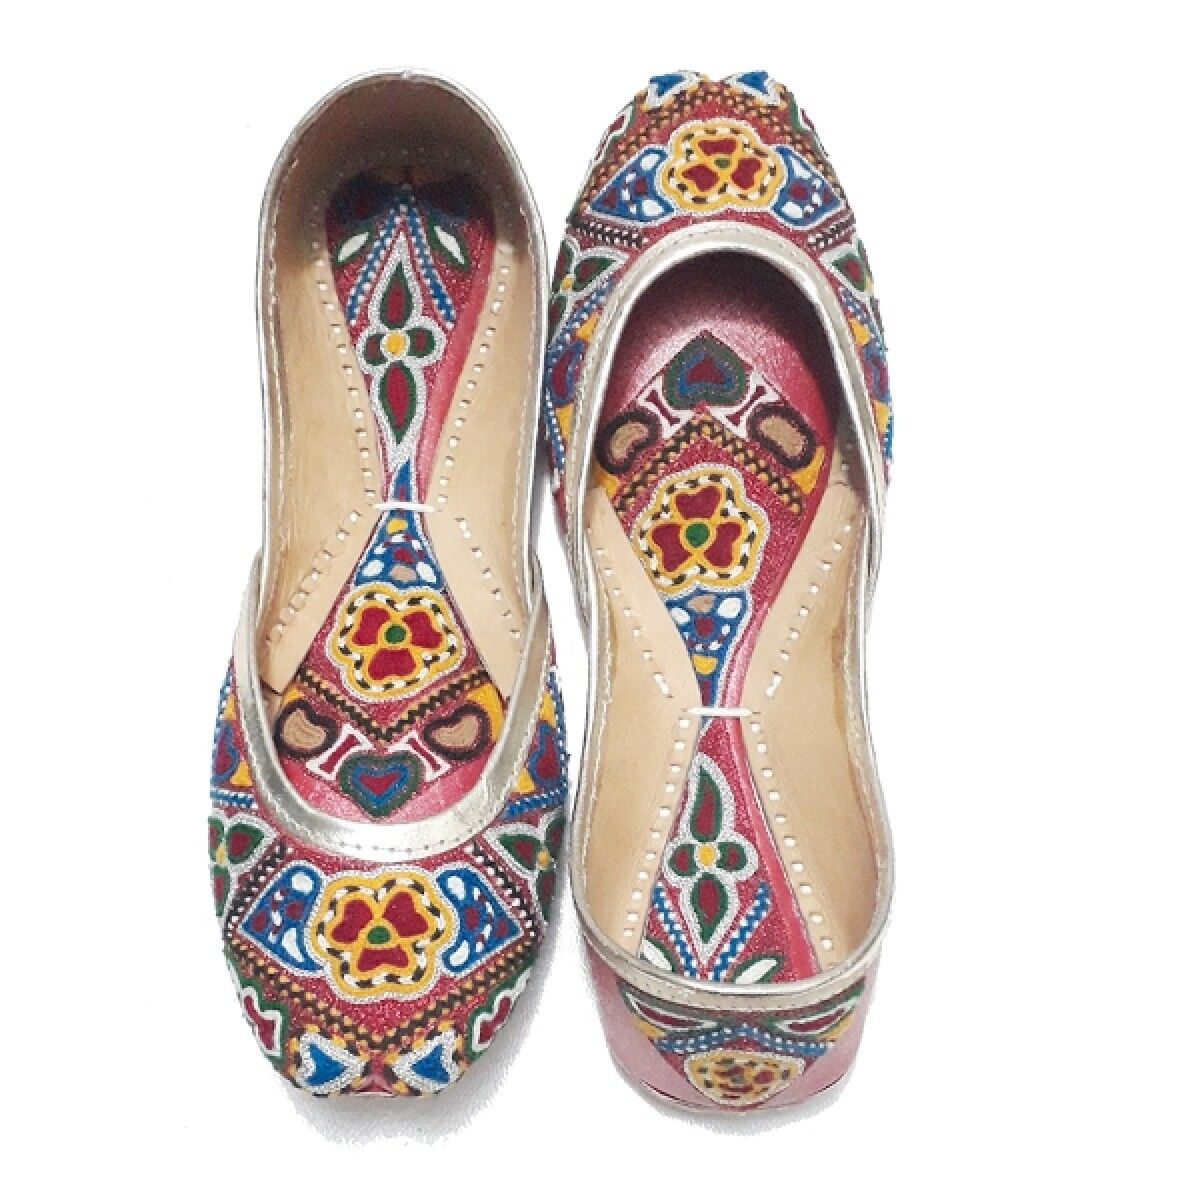 Tana Bana Collection Khussa For Women Price in Pakistan